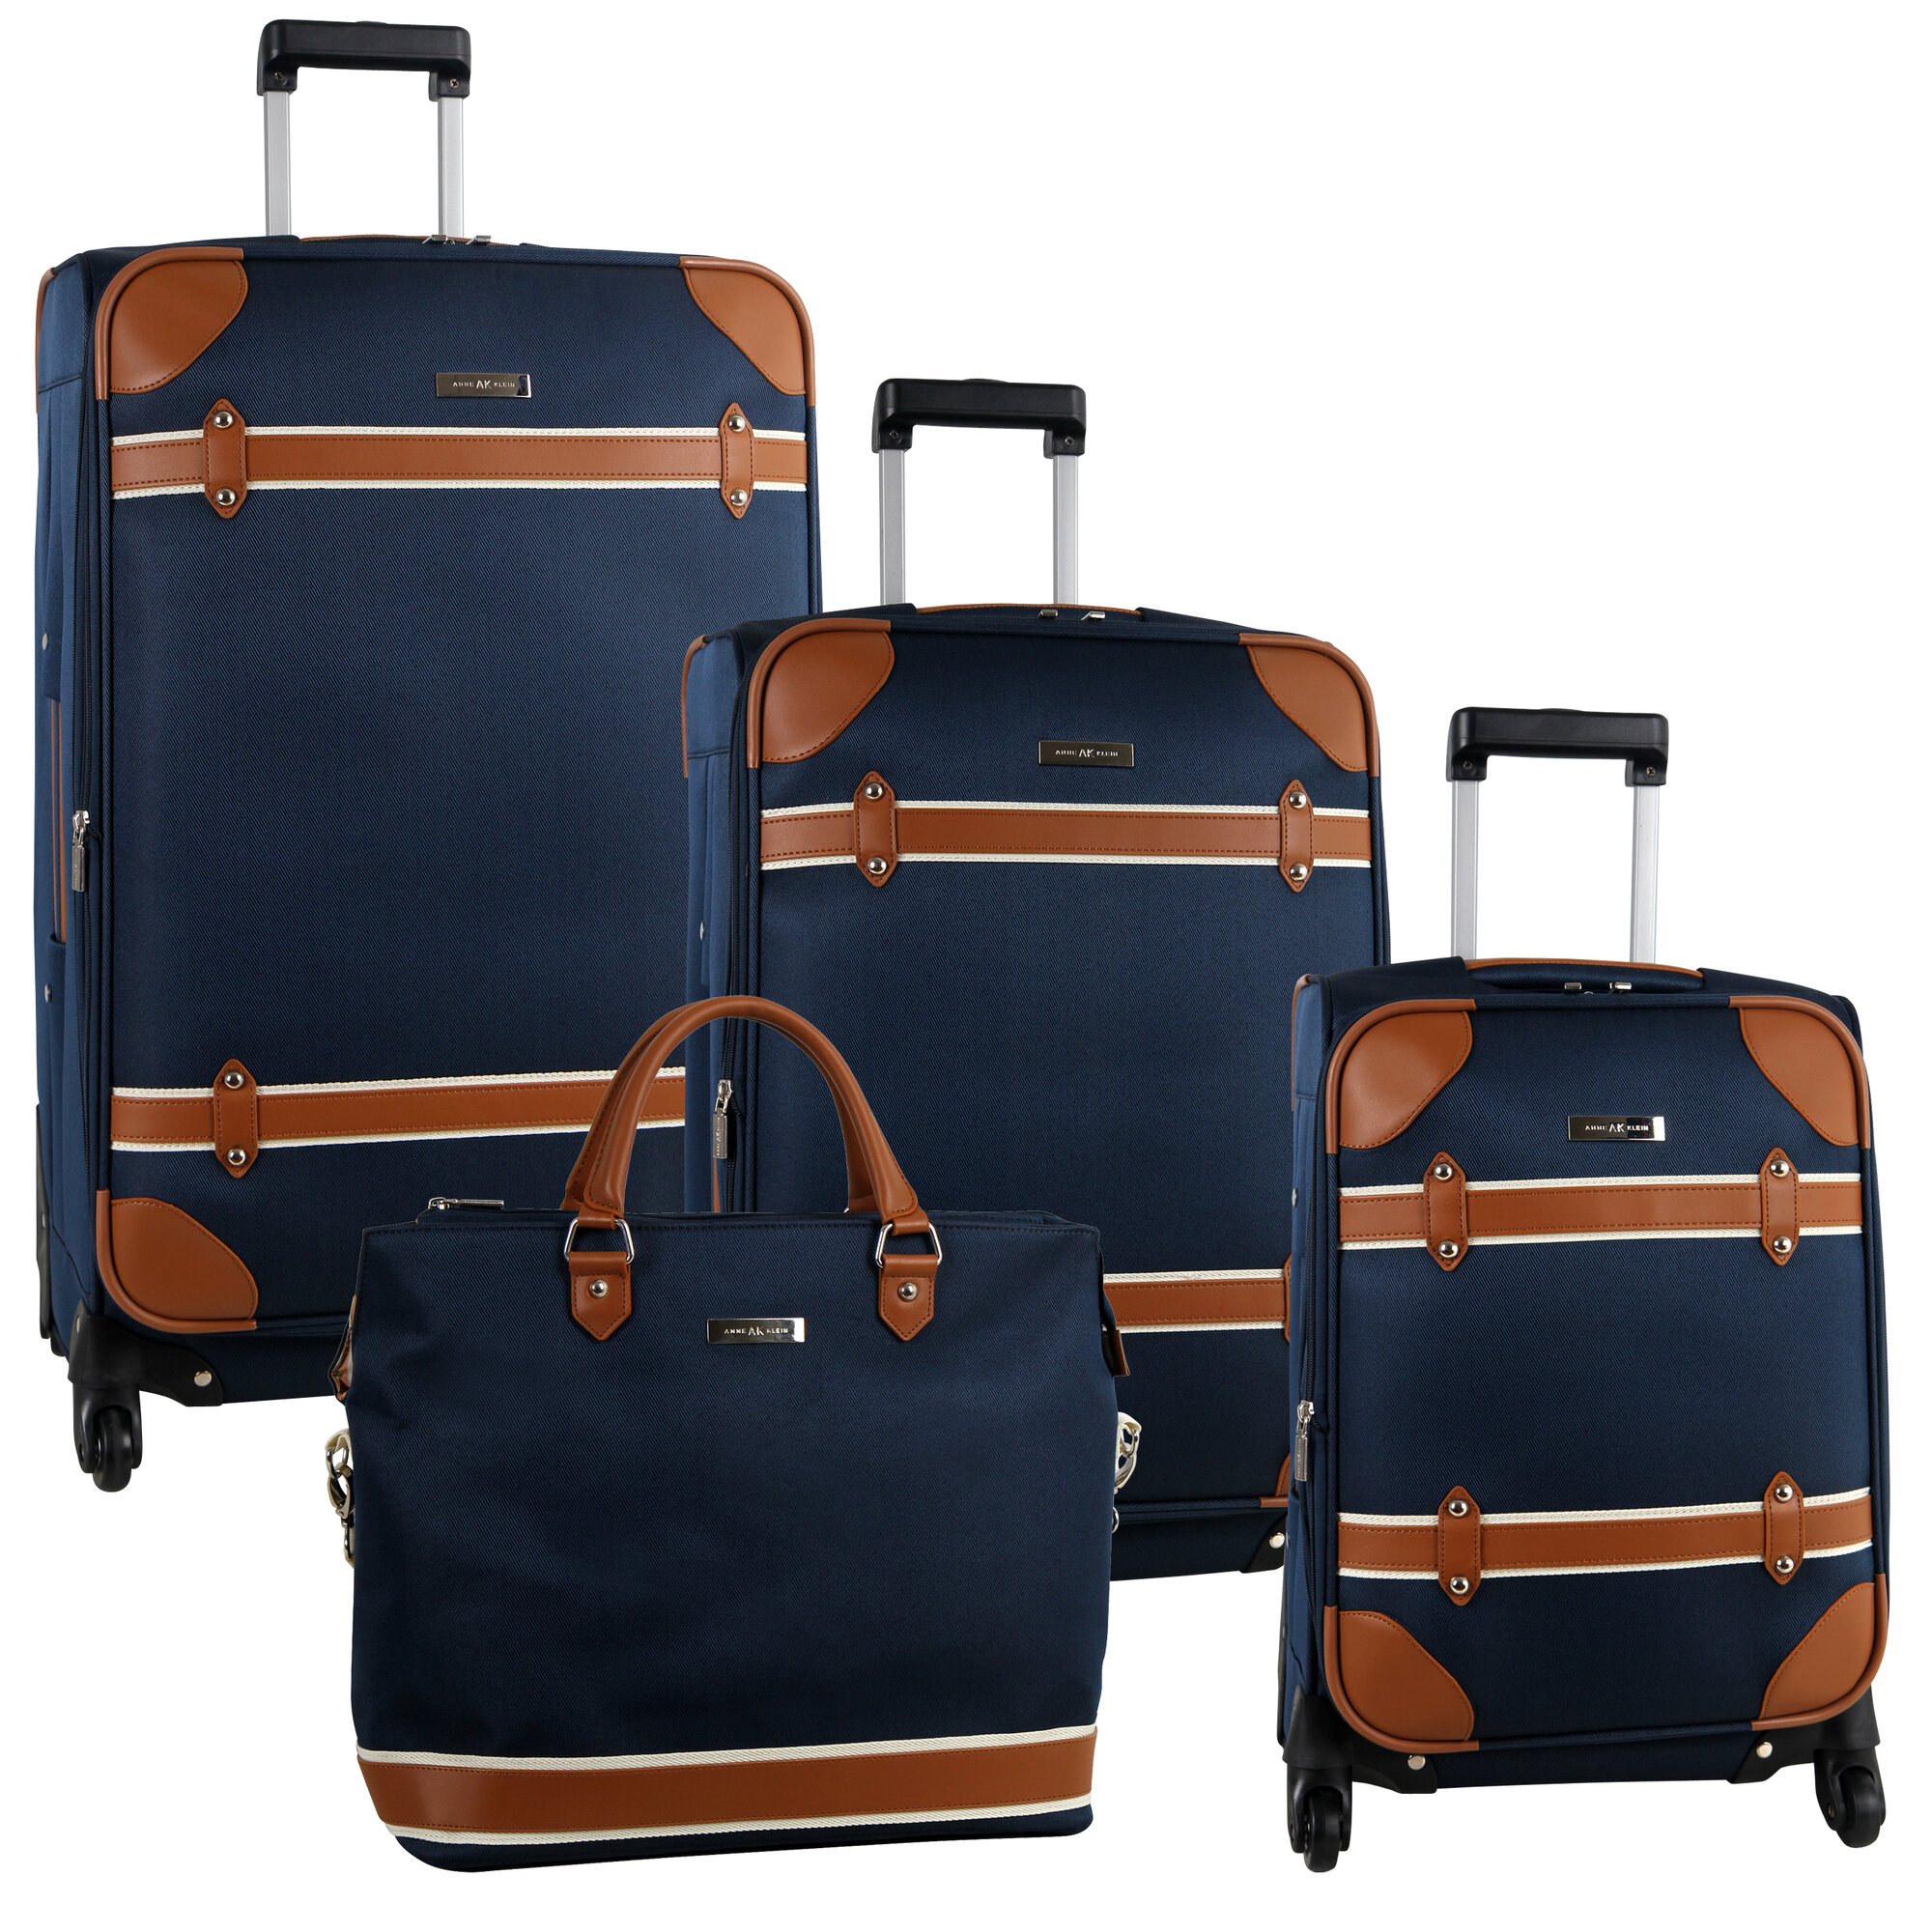 Anne Klein 4 Pc. Spinner Luggage Set